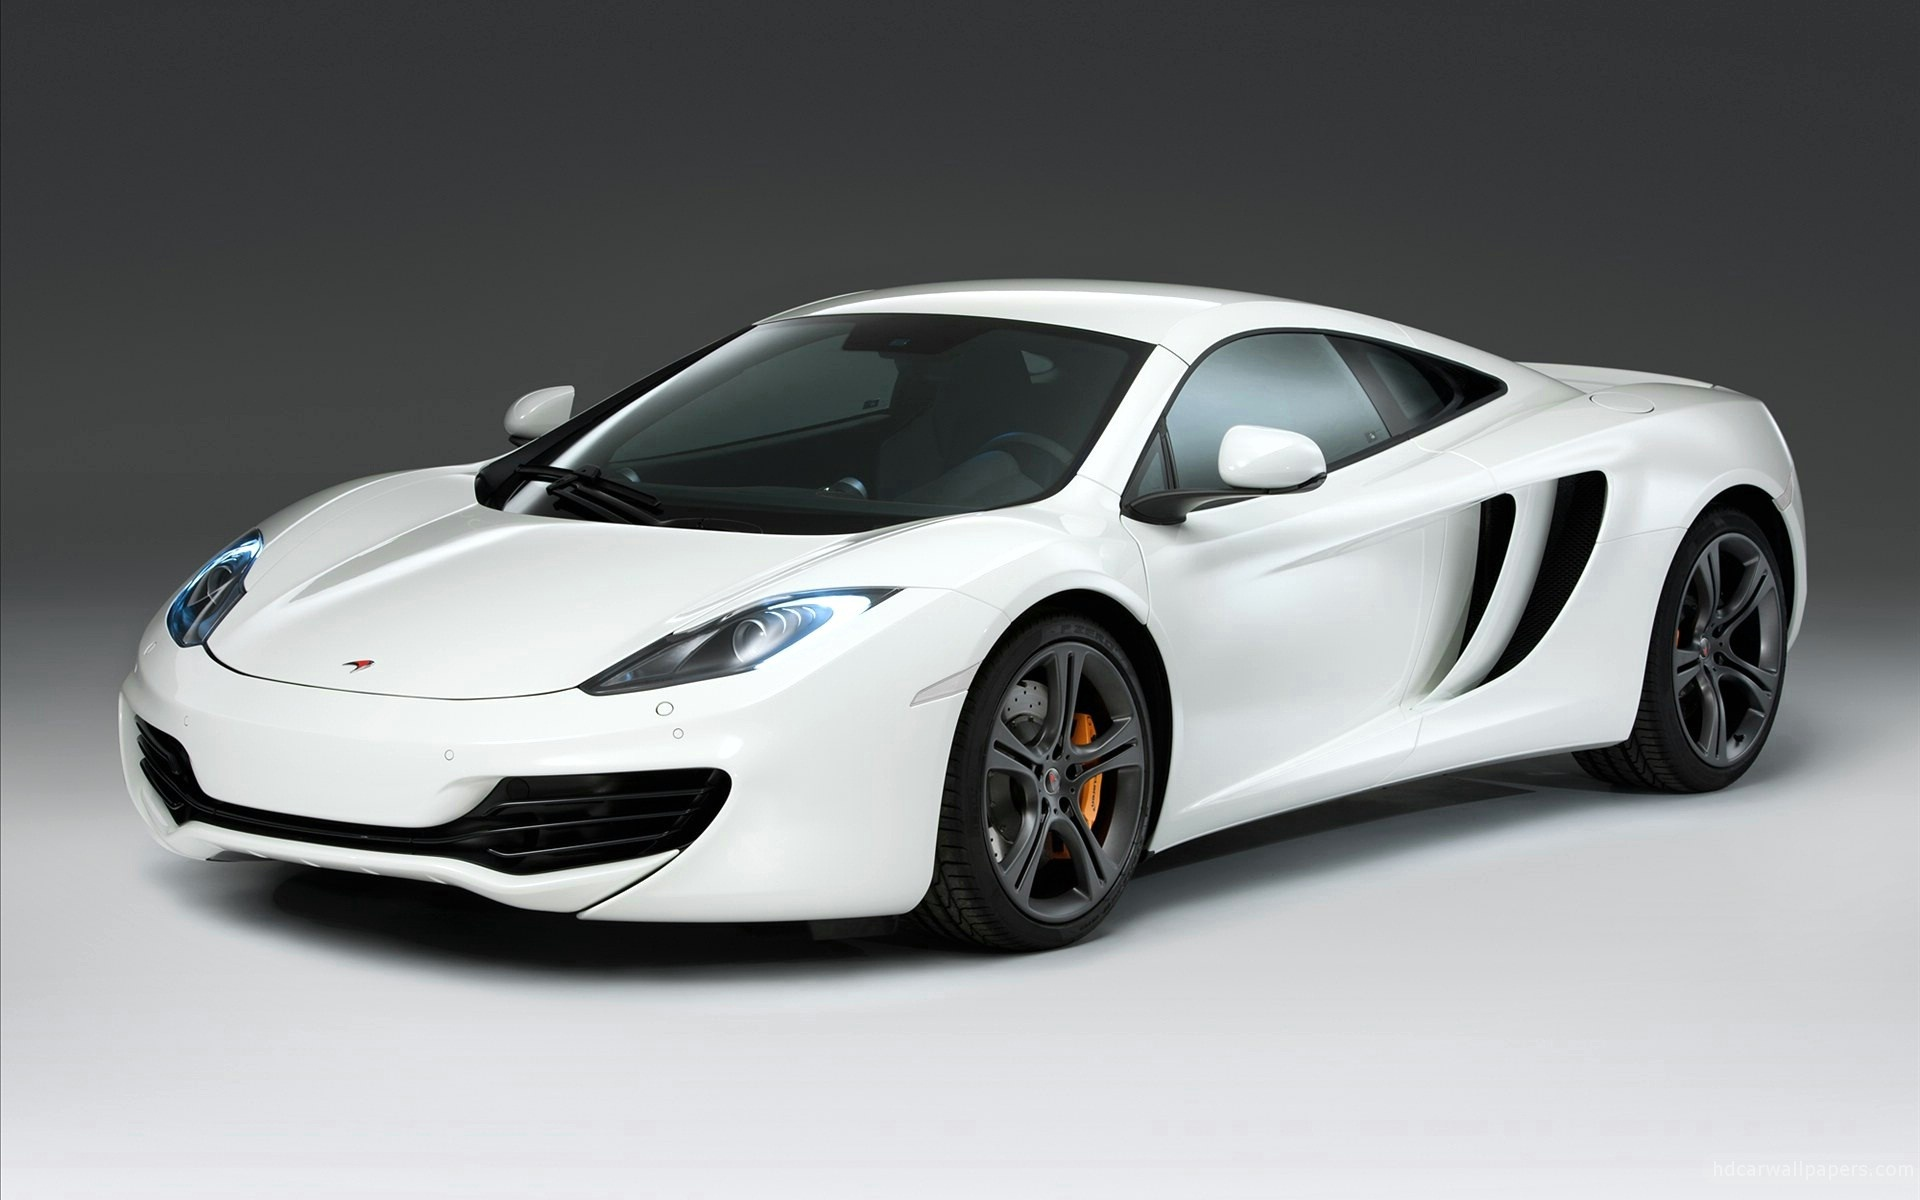 ... Mclaren Car Amazing 4 On Cars Albums ...